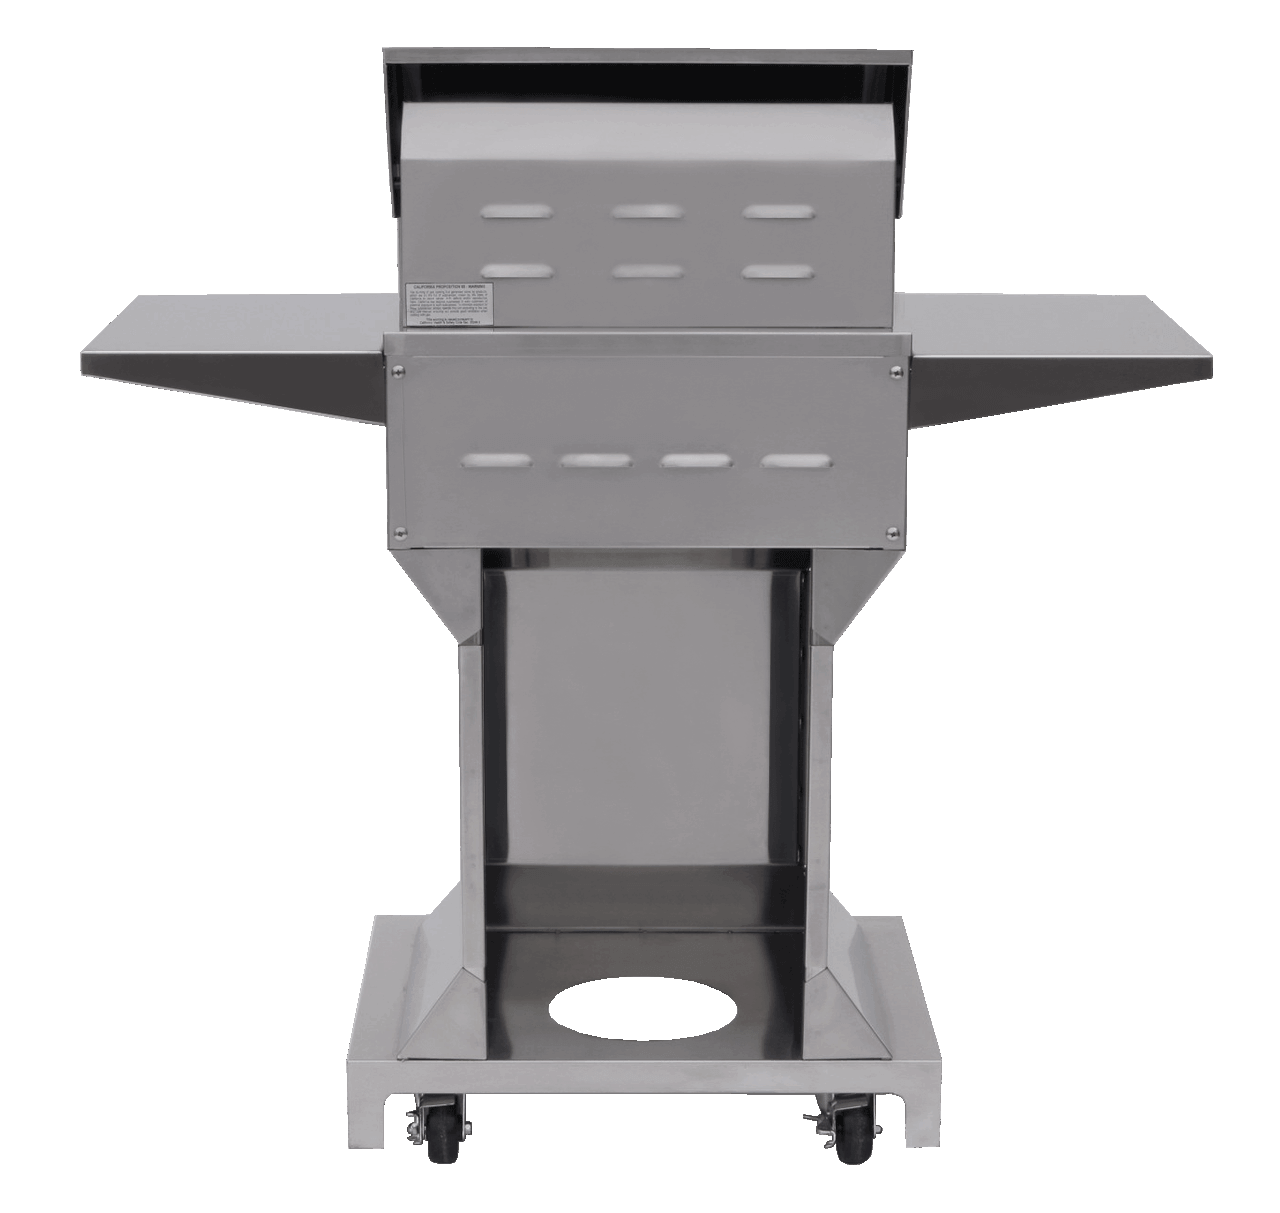 Solaire 21 Inch Grill, Angular Pedestal, Back View, Hood Down, Shelves Up